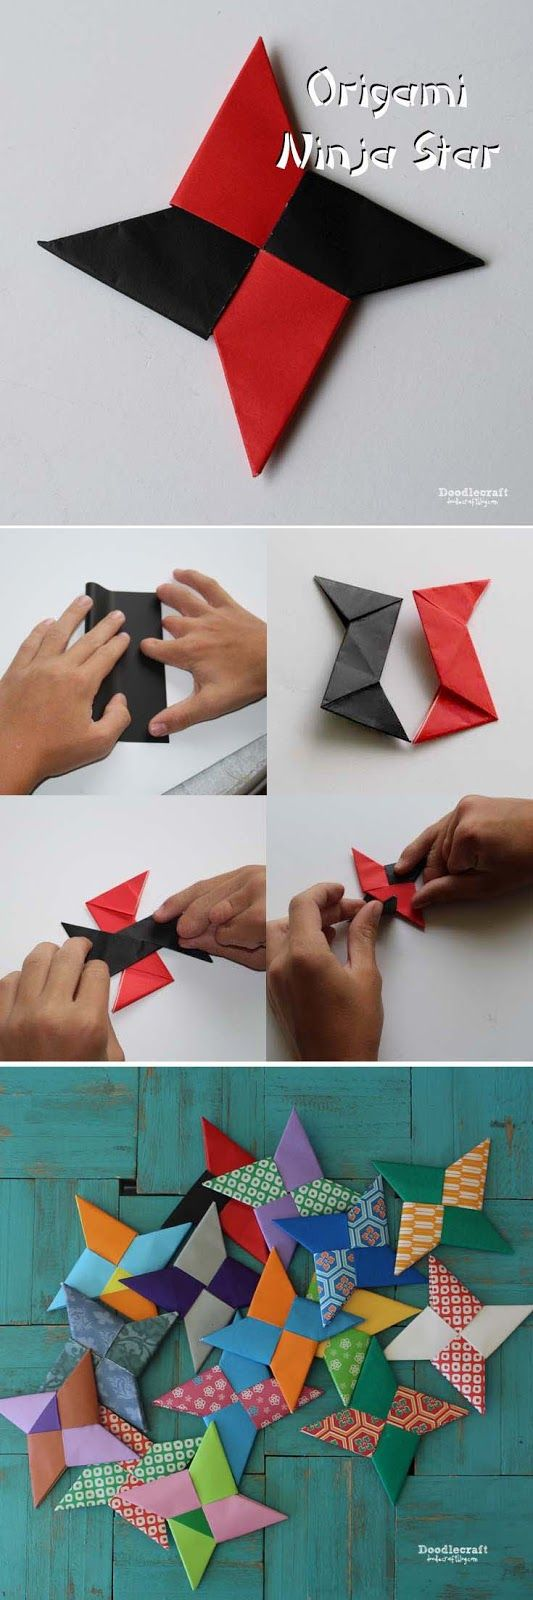 Doodlecraft origami ninja stars pinteres paper folding ninja stars is such a fun activity for kids jeuxipadfo Choice Image